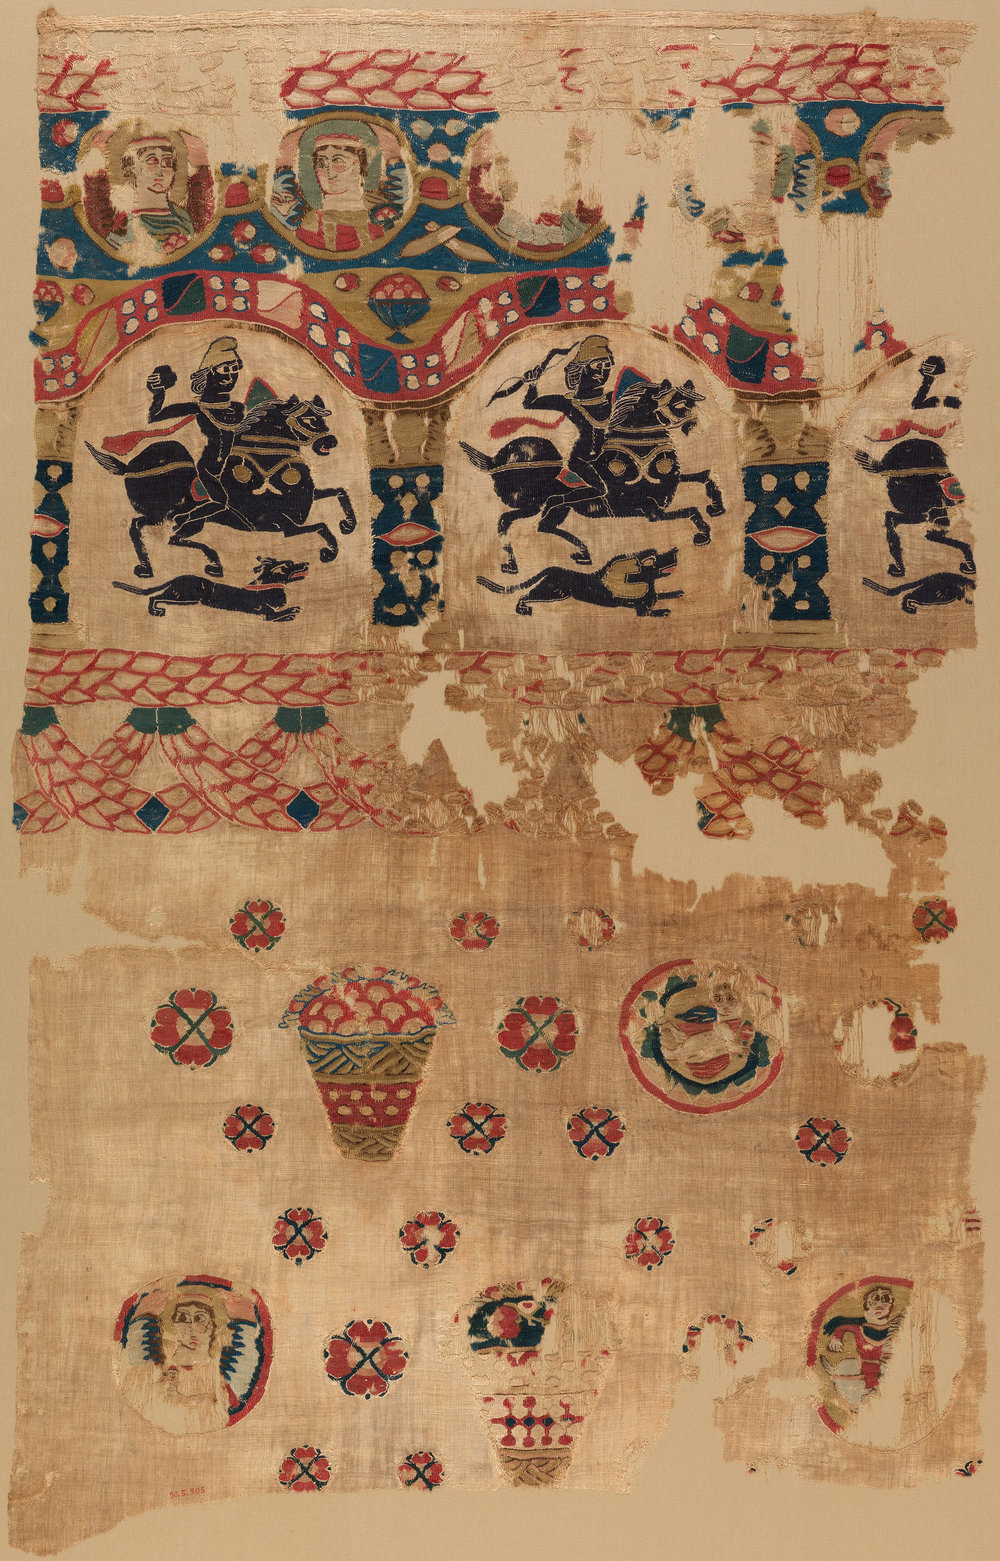 "A fragment from the Metropolitan Museum of Art's collection, woven by Coptic Christians in 5th Century Egypt. ""Arcades containing hunters on horseback recall Roman sources, while the roundels with angels are clearly Christian. Similar imagery, such as the baskets of fruit, is found on the wall paintings of Umayyad desert palaces in Syria […] Such textiles were woven in well‑organized workshops that continued to function in the early Islamic period."""